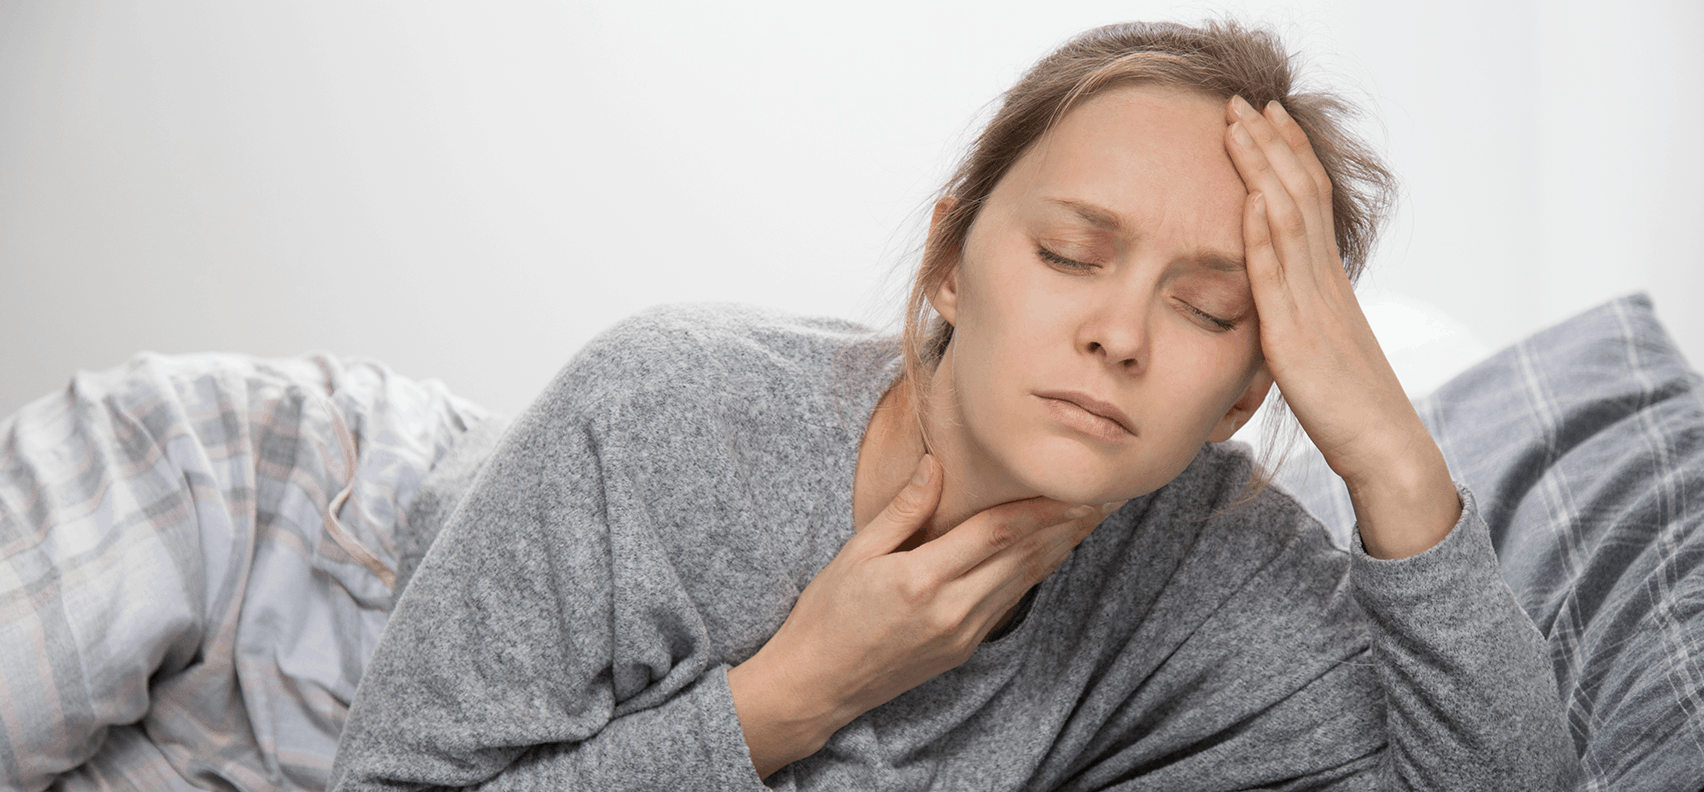 Can allergies cause a sore throat?